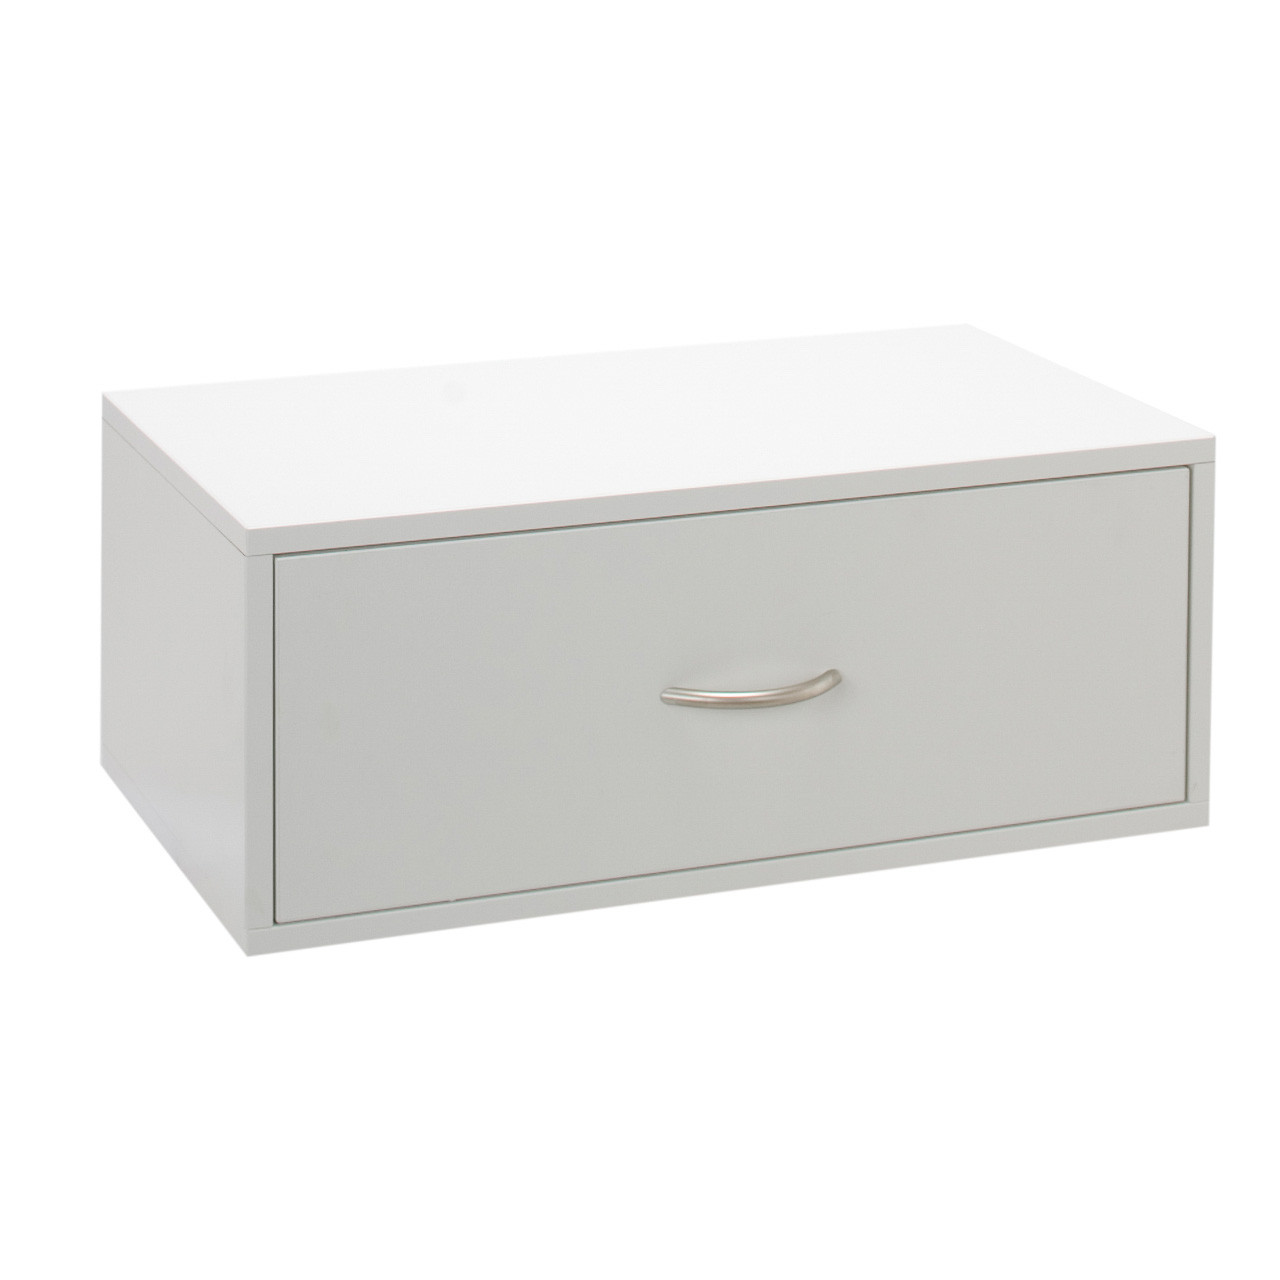 Big OBox 1 Drawer Unit - Double Hang